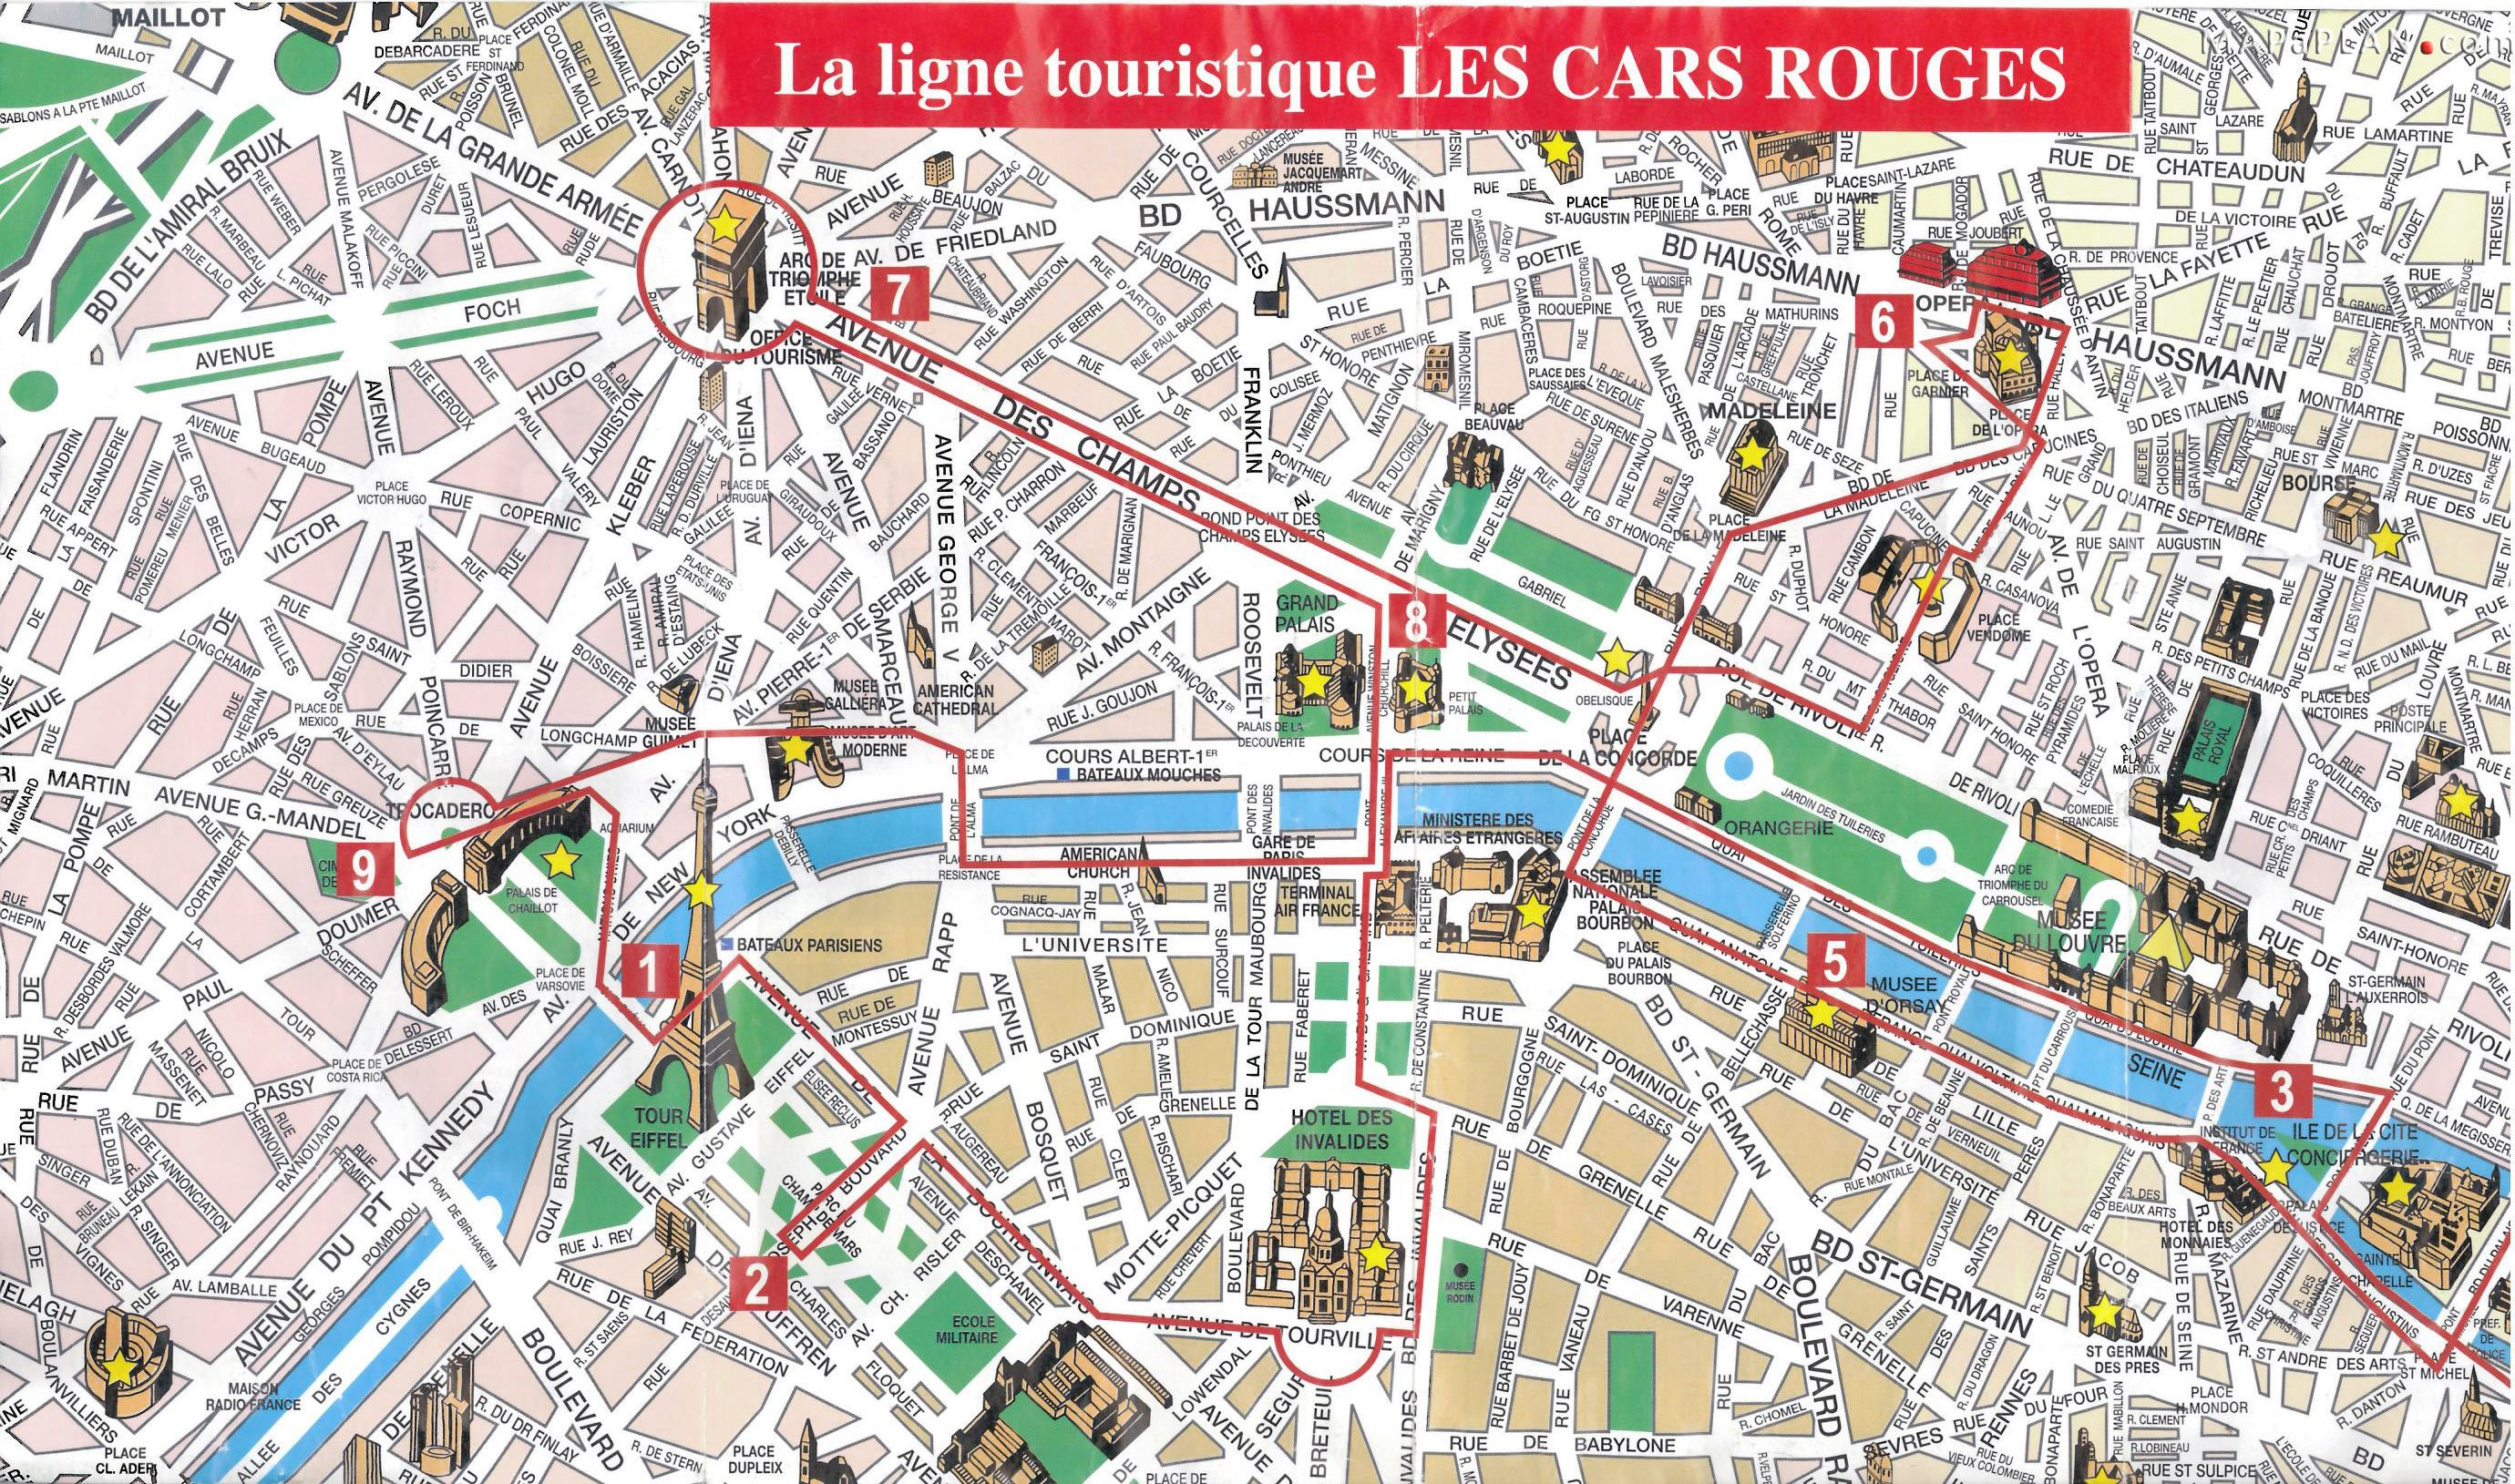 paris top tourist attractions map 08 city sightseeting route planner paris pinterest route. Black Bedroom Furniture Sets. Home Design Ideas